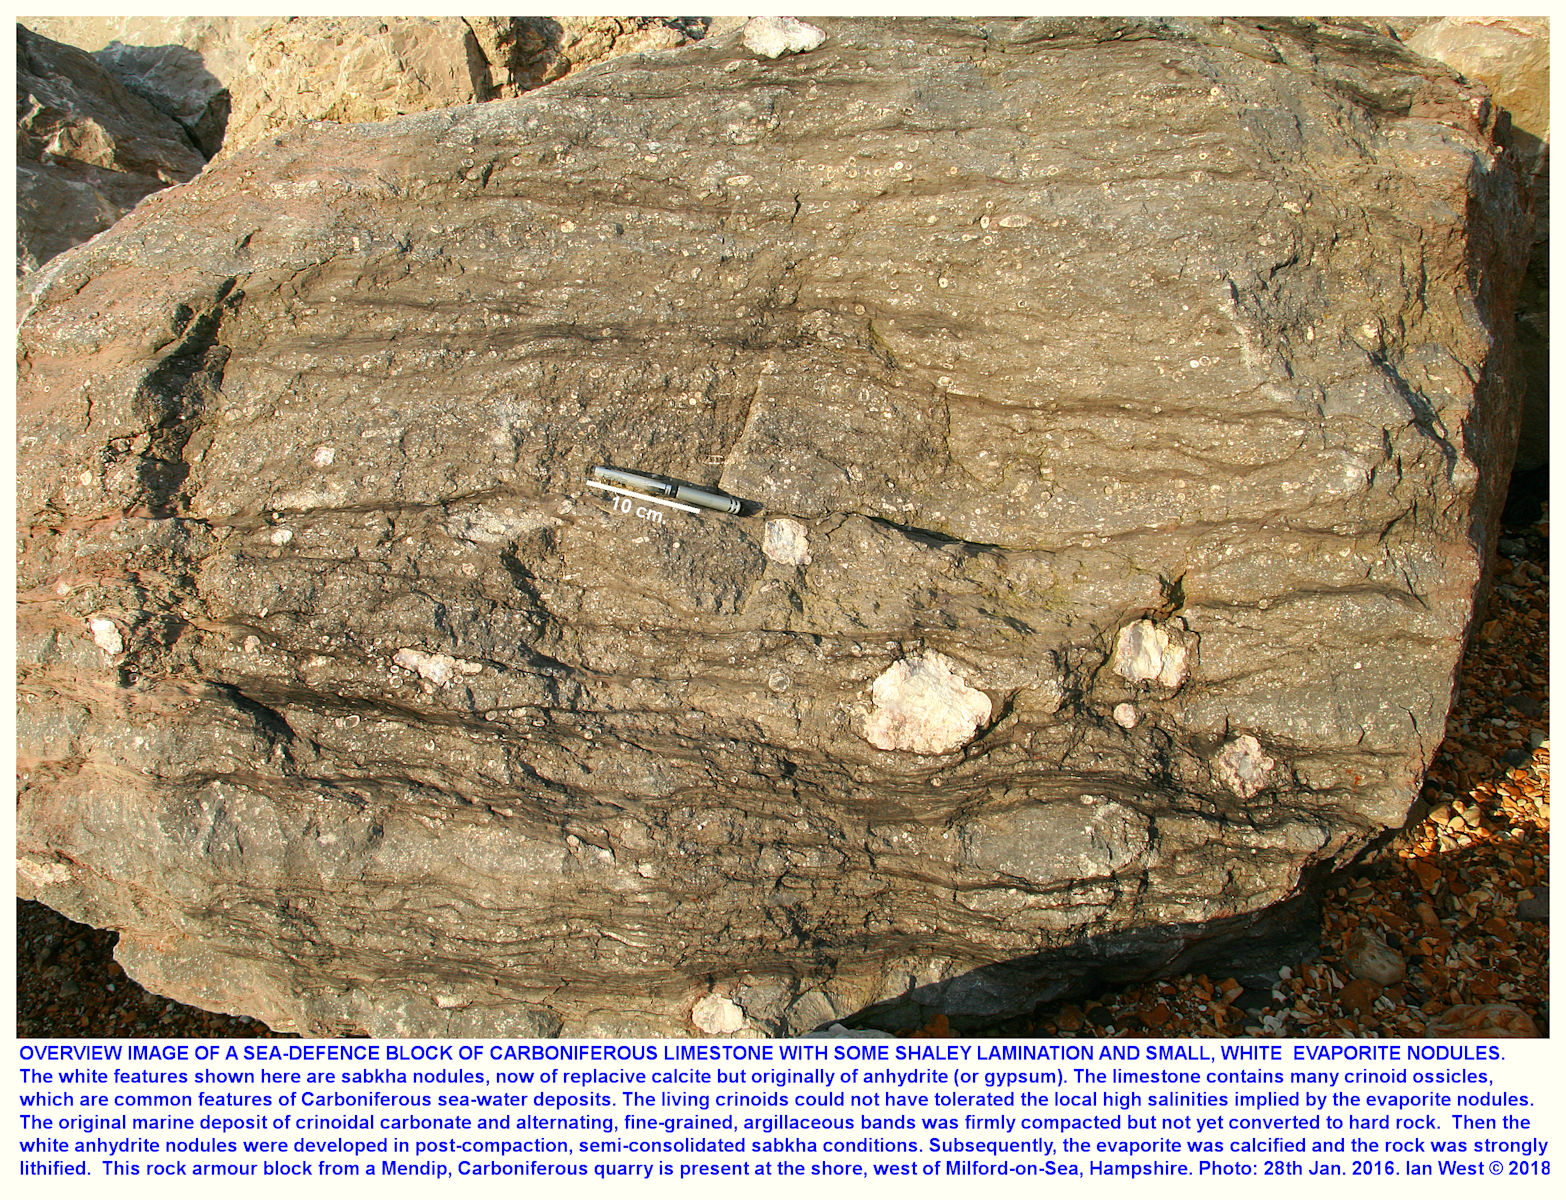 General overview of a calcite-replaced anhdydrite or gypsum nodules in Carboniferous Limestone rock armour at Milford-on-Sea, west of Barton-on-Sea, Hampshire